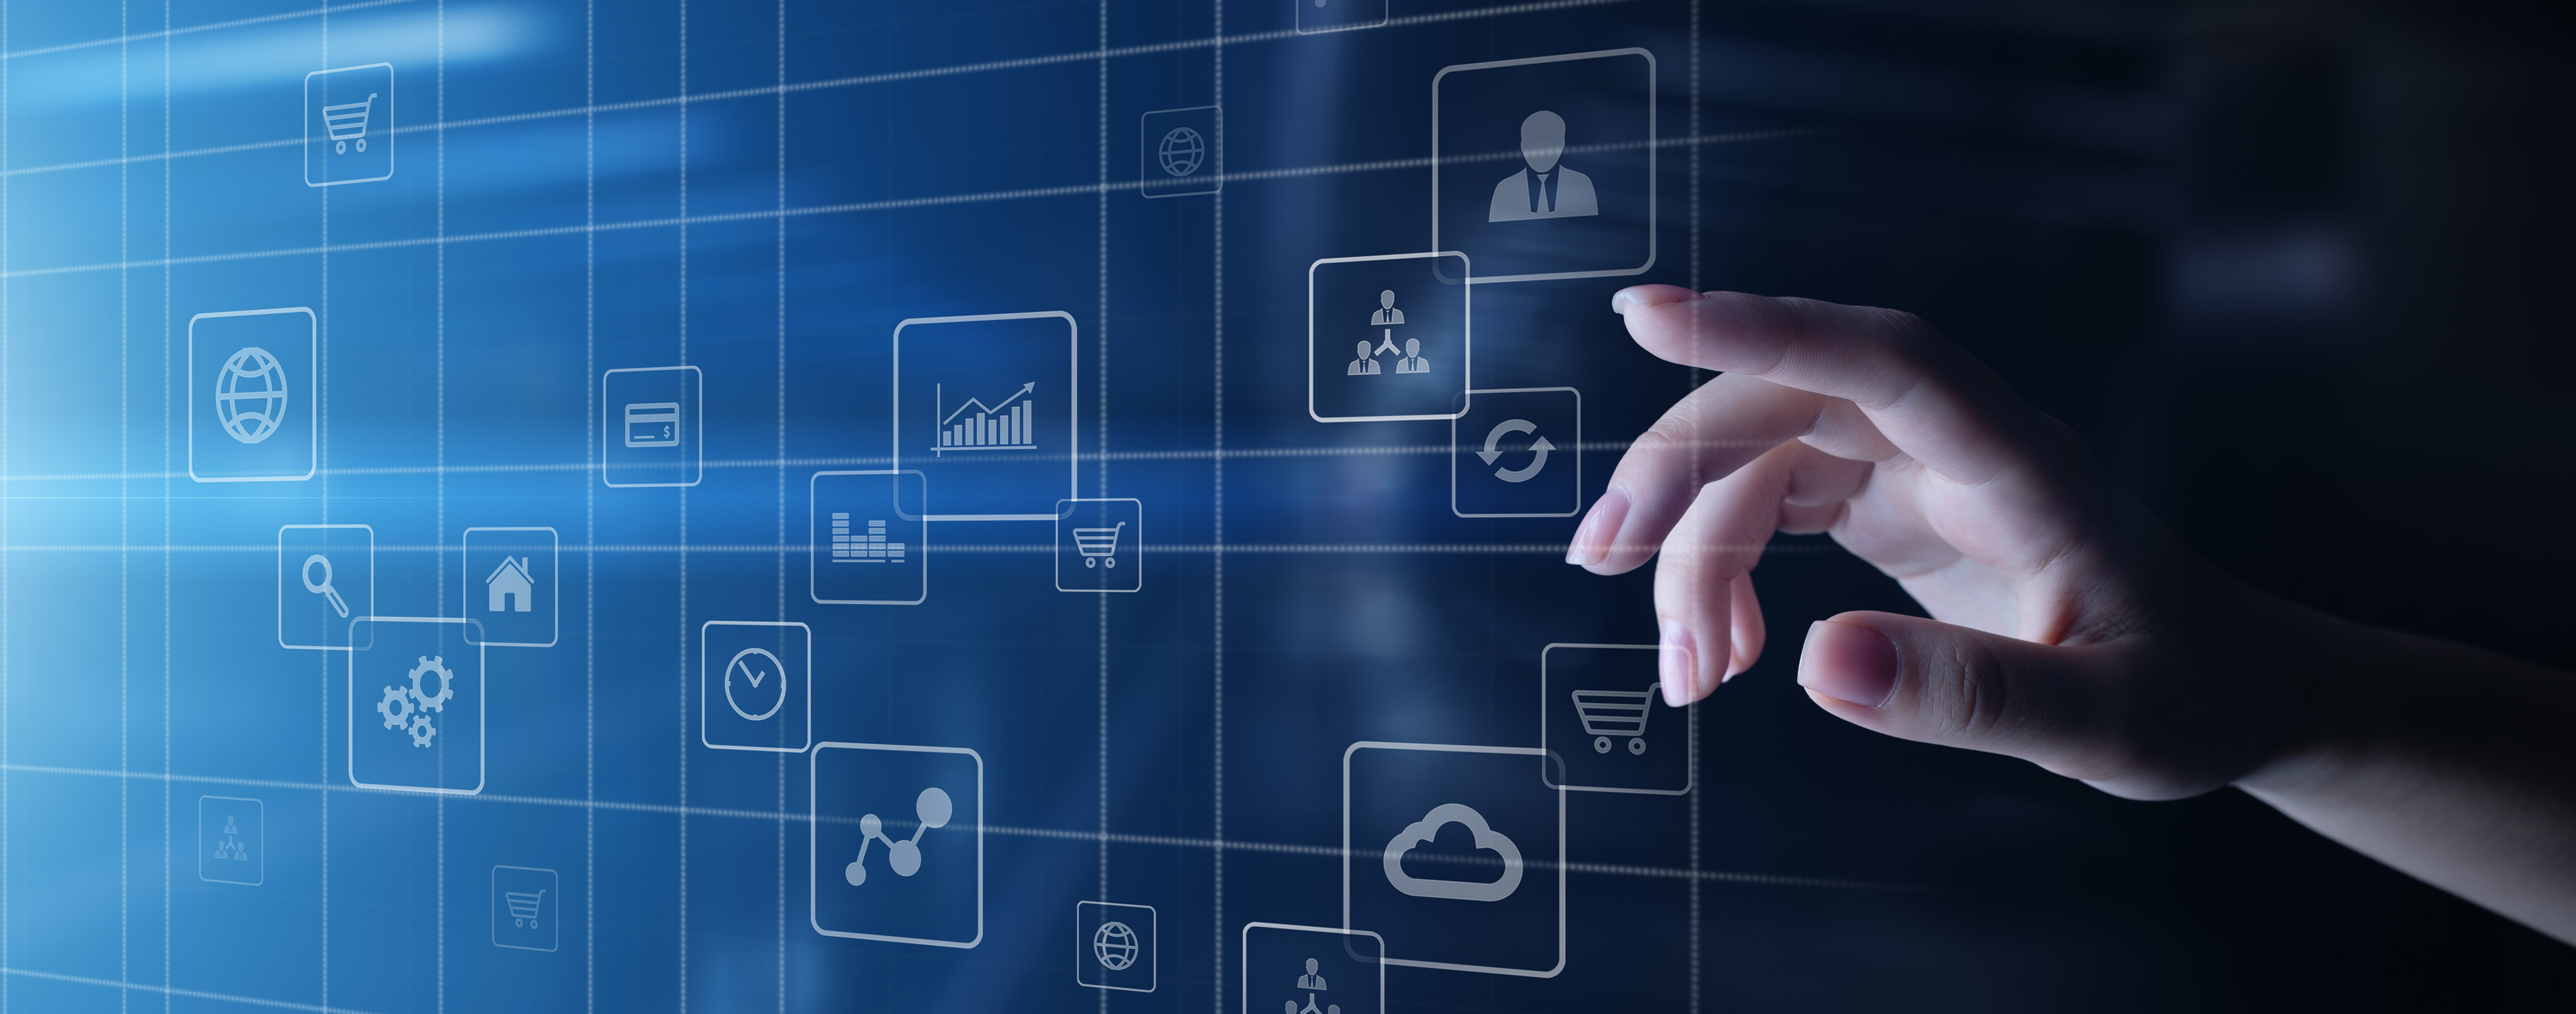 Cloud Native Applications for Enterprises to Improve Business Agility